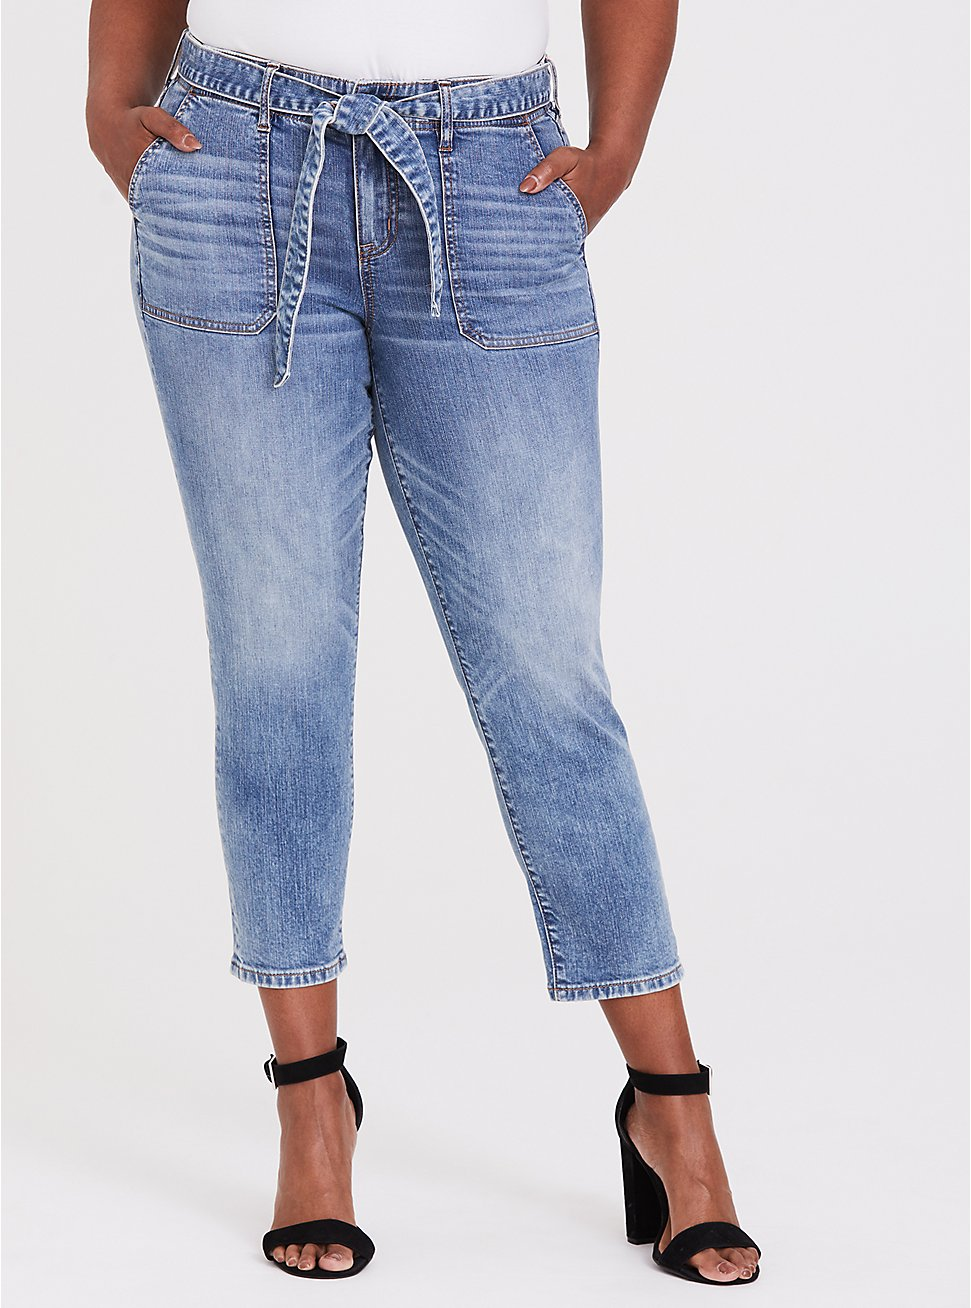 Mid Rise Straight Jean- Vintage Stretch Light Wash with Sash, , fitModel1-hires